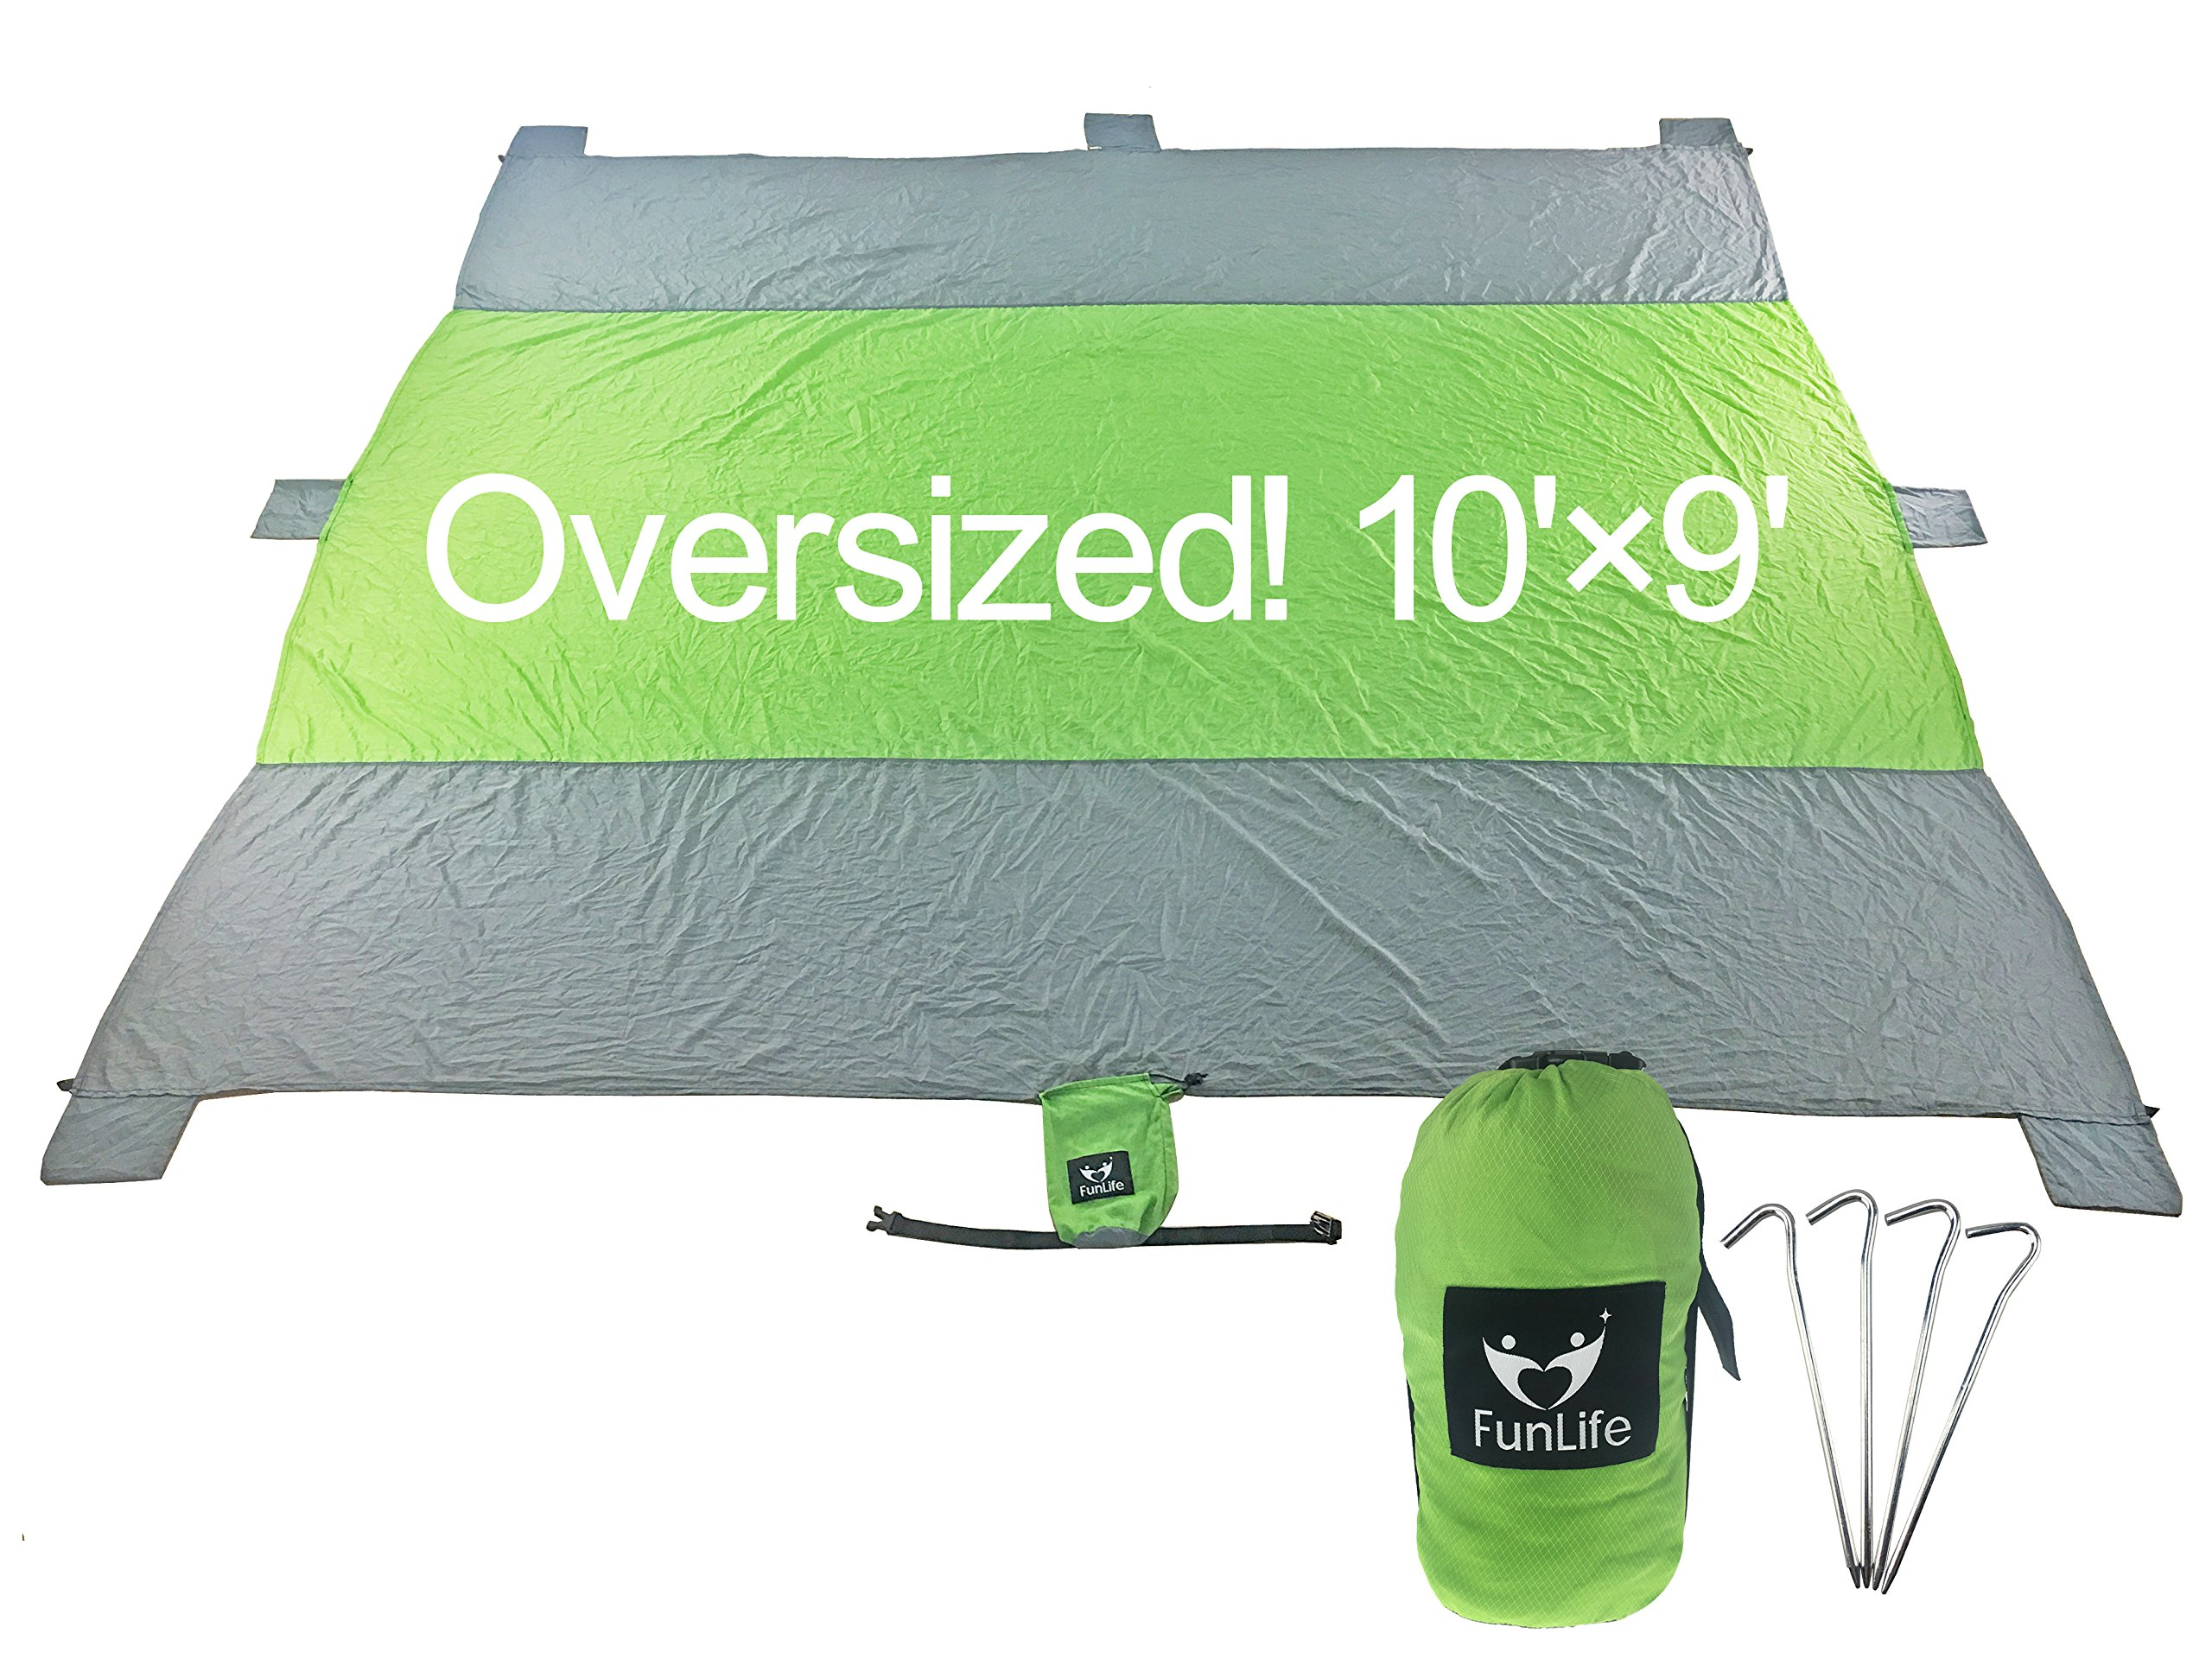 Fun Life Oversized 10'x9' Compact Picnic Blanket Beach Sand Free Gift For up to 7 Adults Soft Quick Drying Nylon 6 Weightable Pockets Personal Item Zipper Pouch 4 Anchor Loops 4 Strong 7'' metal stakes